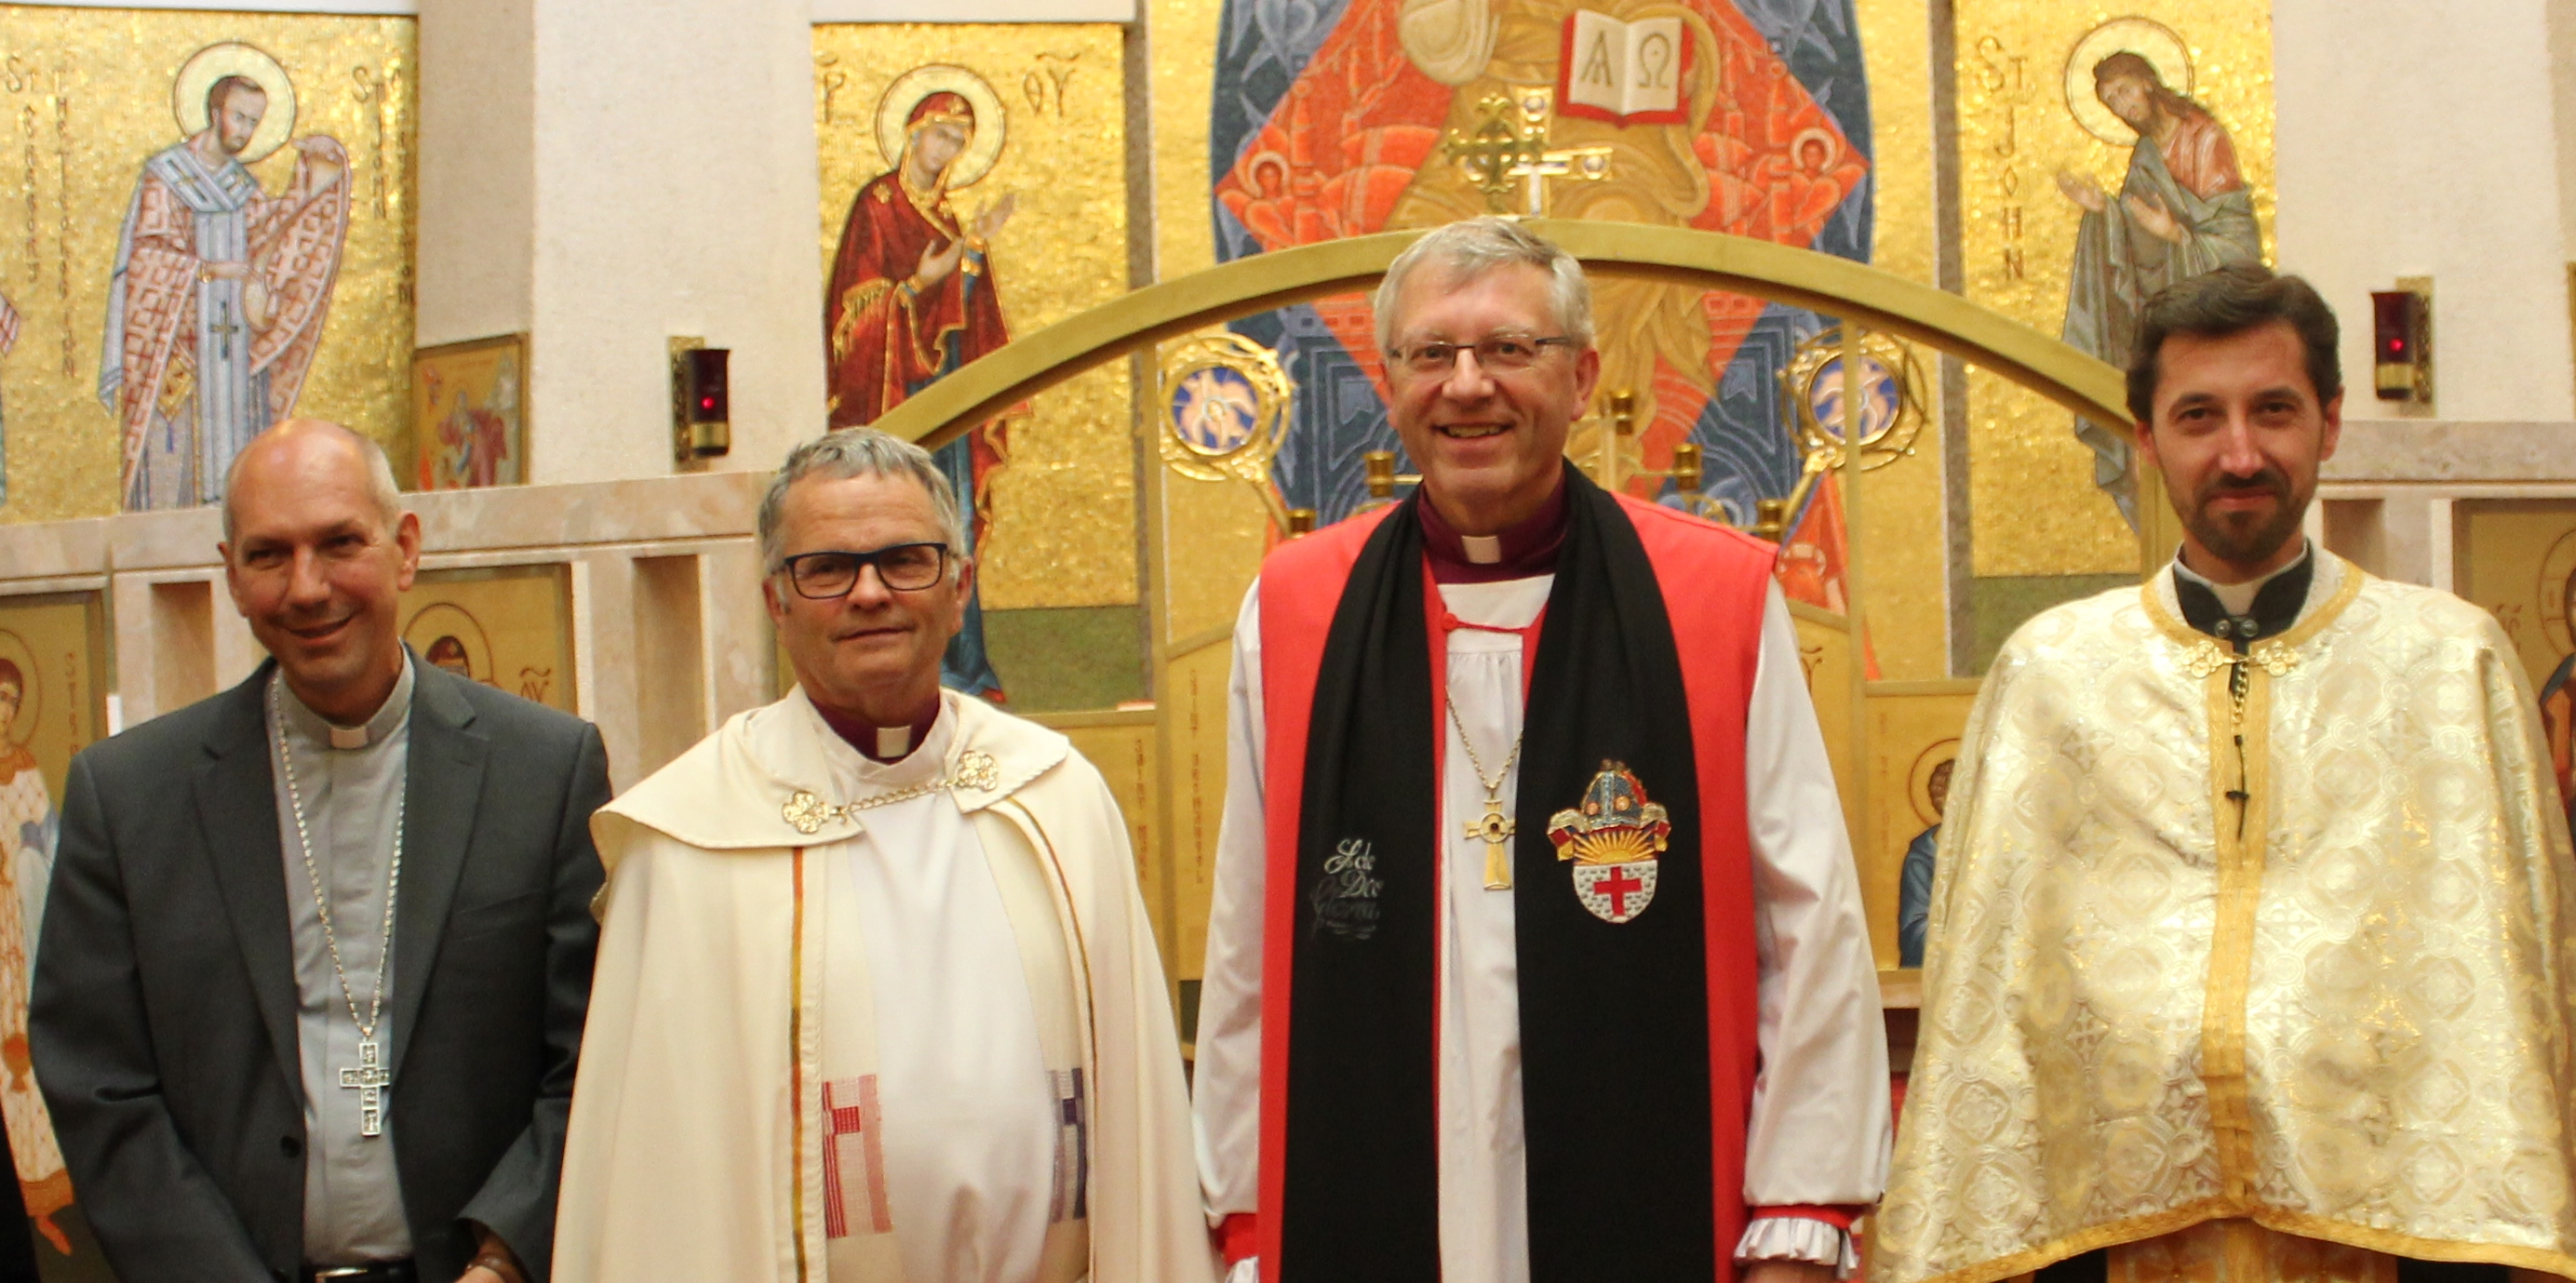 Archbishop Donald Bolen, Bishop Sid Haugen, Bishop Robert Hardwick, and Fr. Vasyl Tymishak at the annual covenant service for Anglican and Roman Catholic churches in southern Saskatchewan (Canada). The covenant will be expanding to include the Evangelical Lutheran Church in Canada and the Ukrainian Catholic Church in 2020